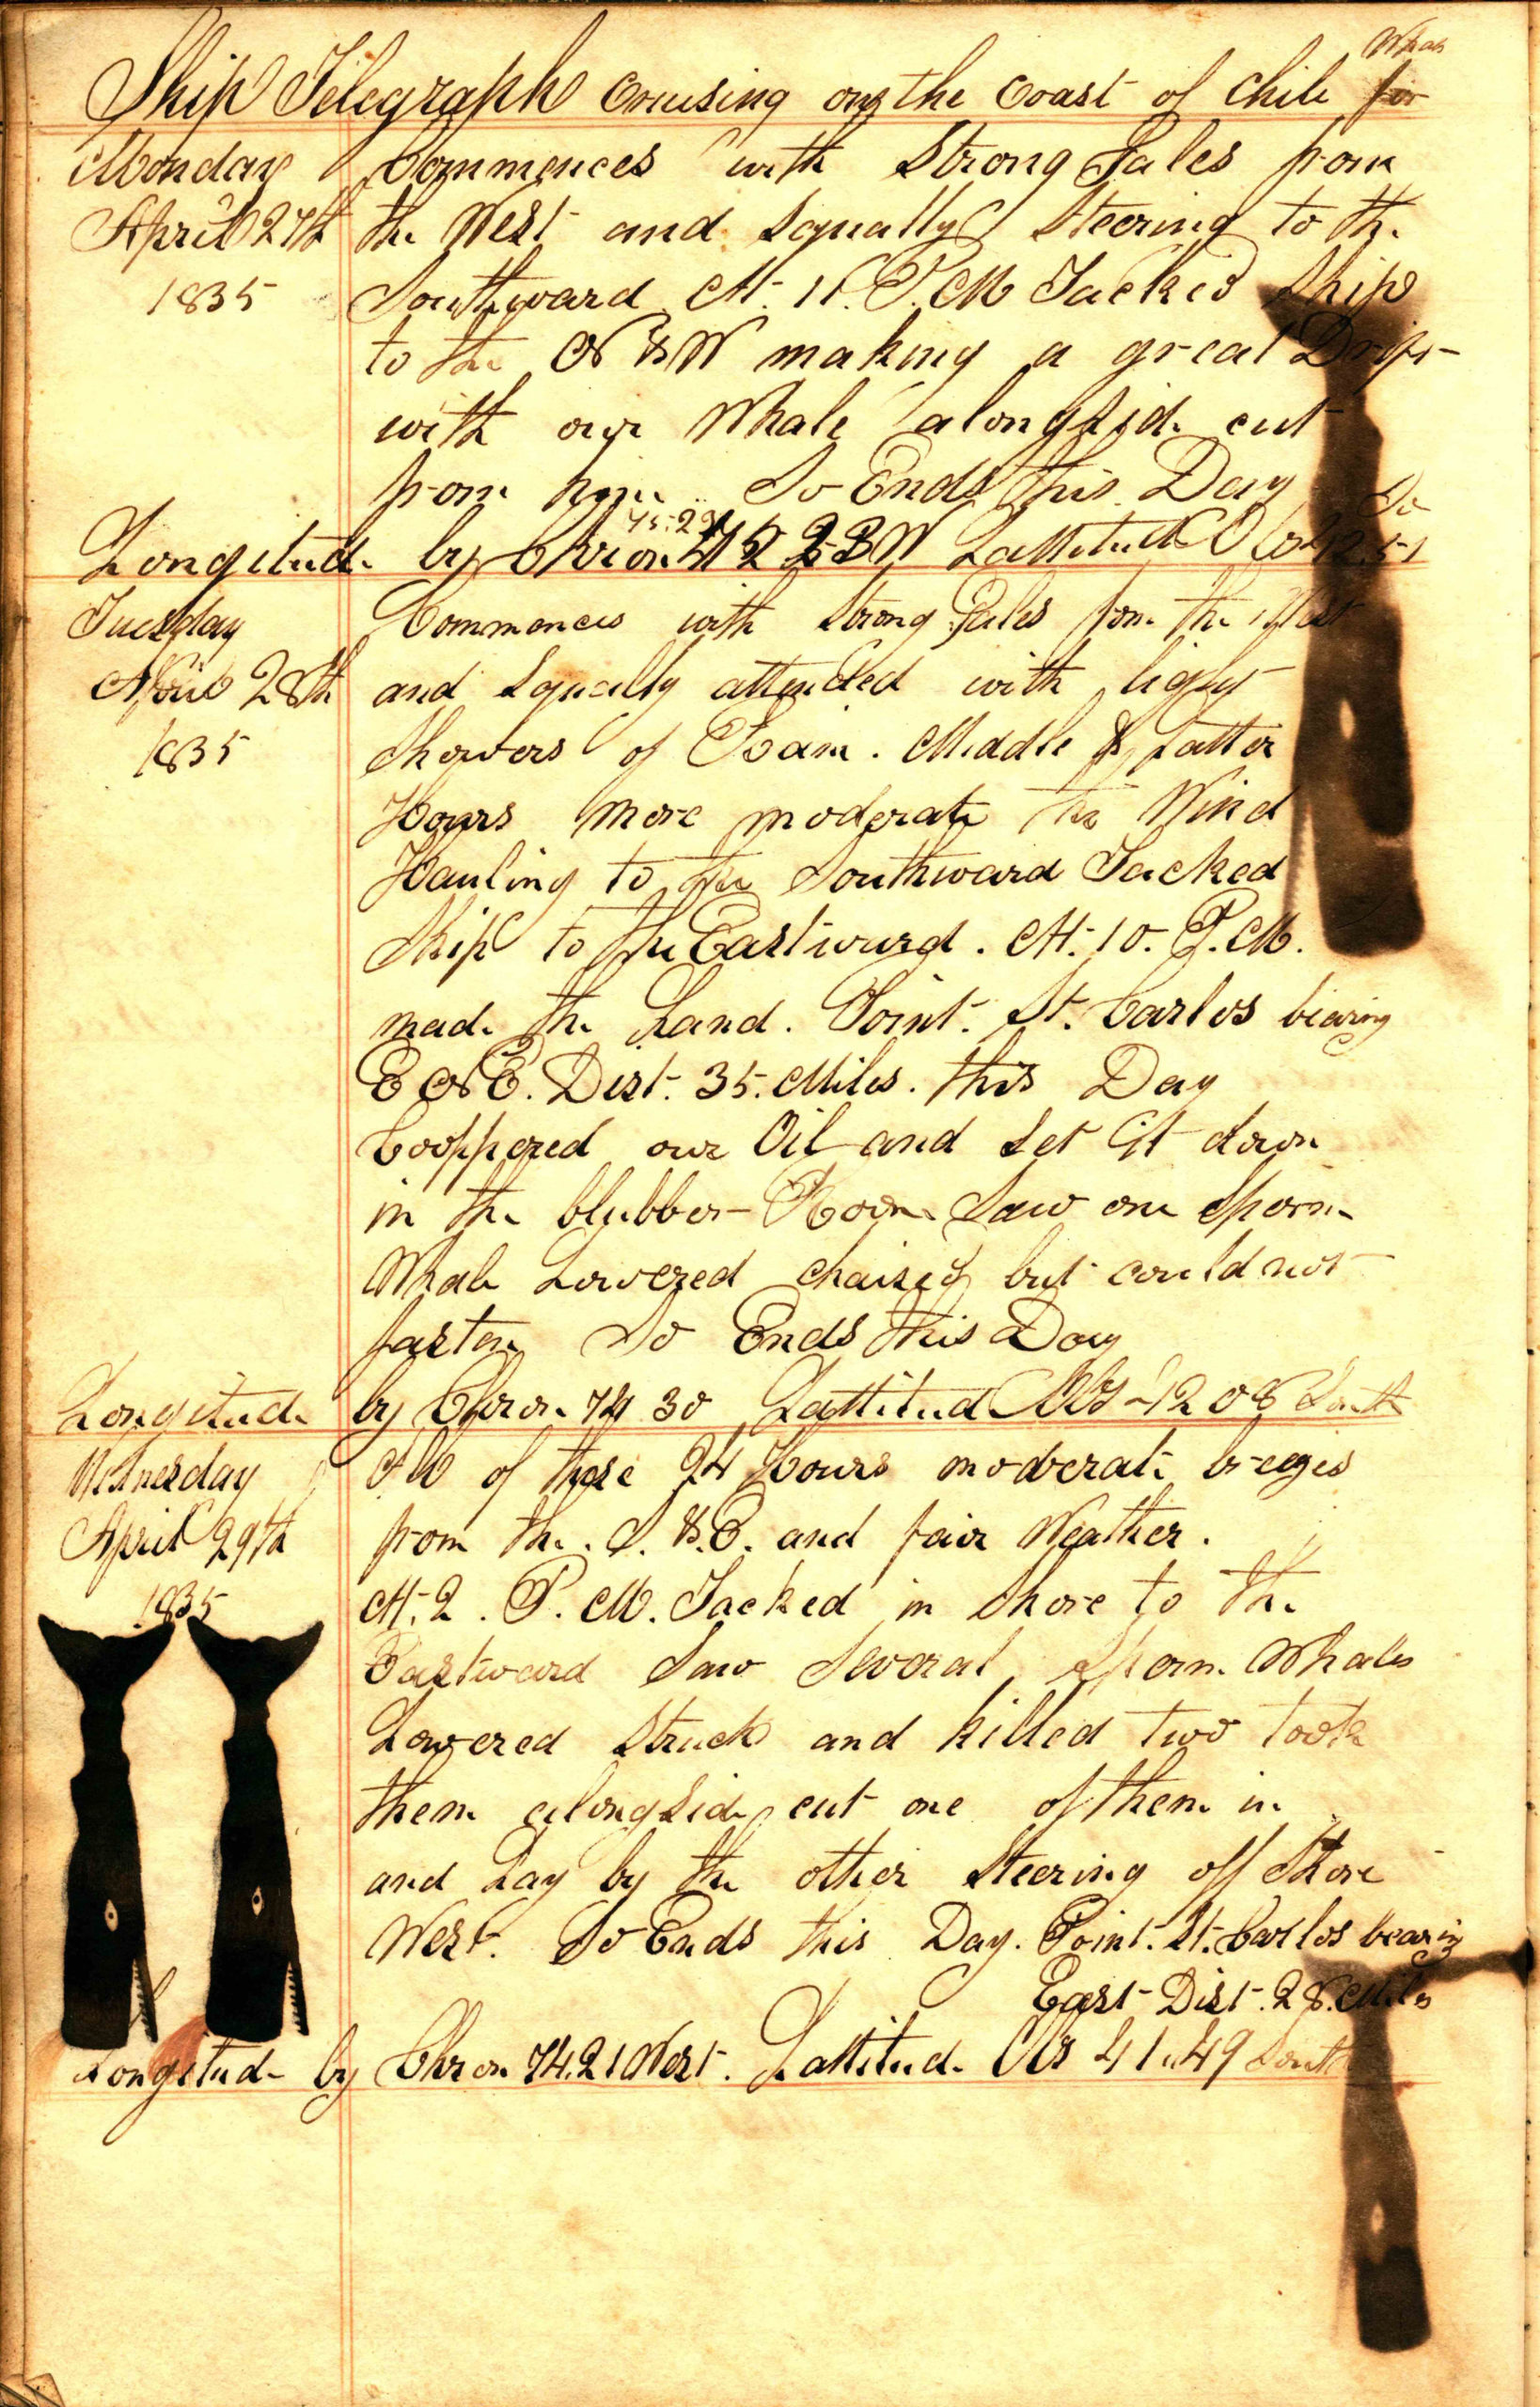 A page taken from the whaling ship Telegraph, on a voyage from Sag Harbor to the South Atlantic Ocean and Oceania, 21 October 1834 - 21 May 1836.    COURTESY EAST HAMPTON LIBRARY, LONG ISLAND COLLECTION